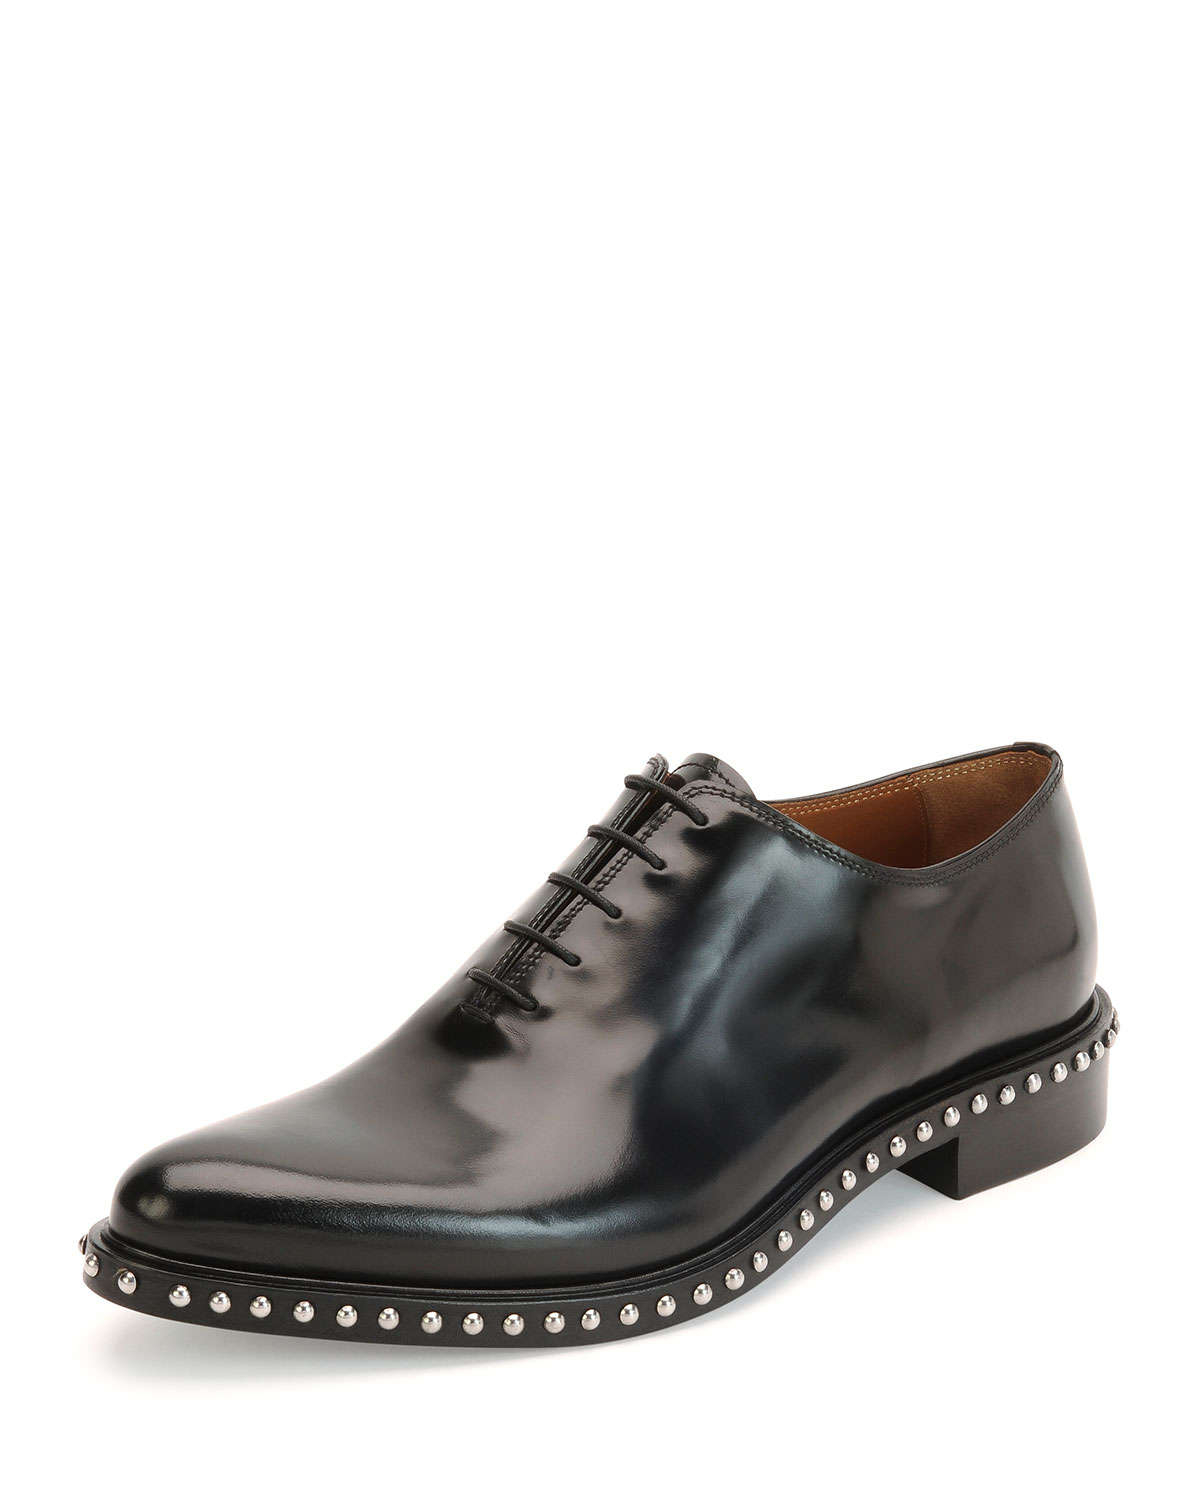 Mens Dress Shoes With Studs